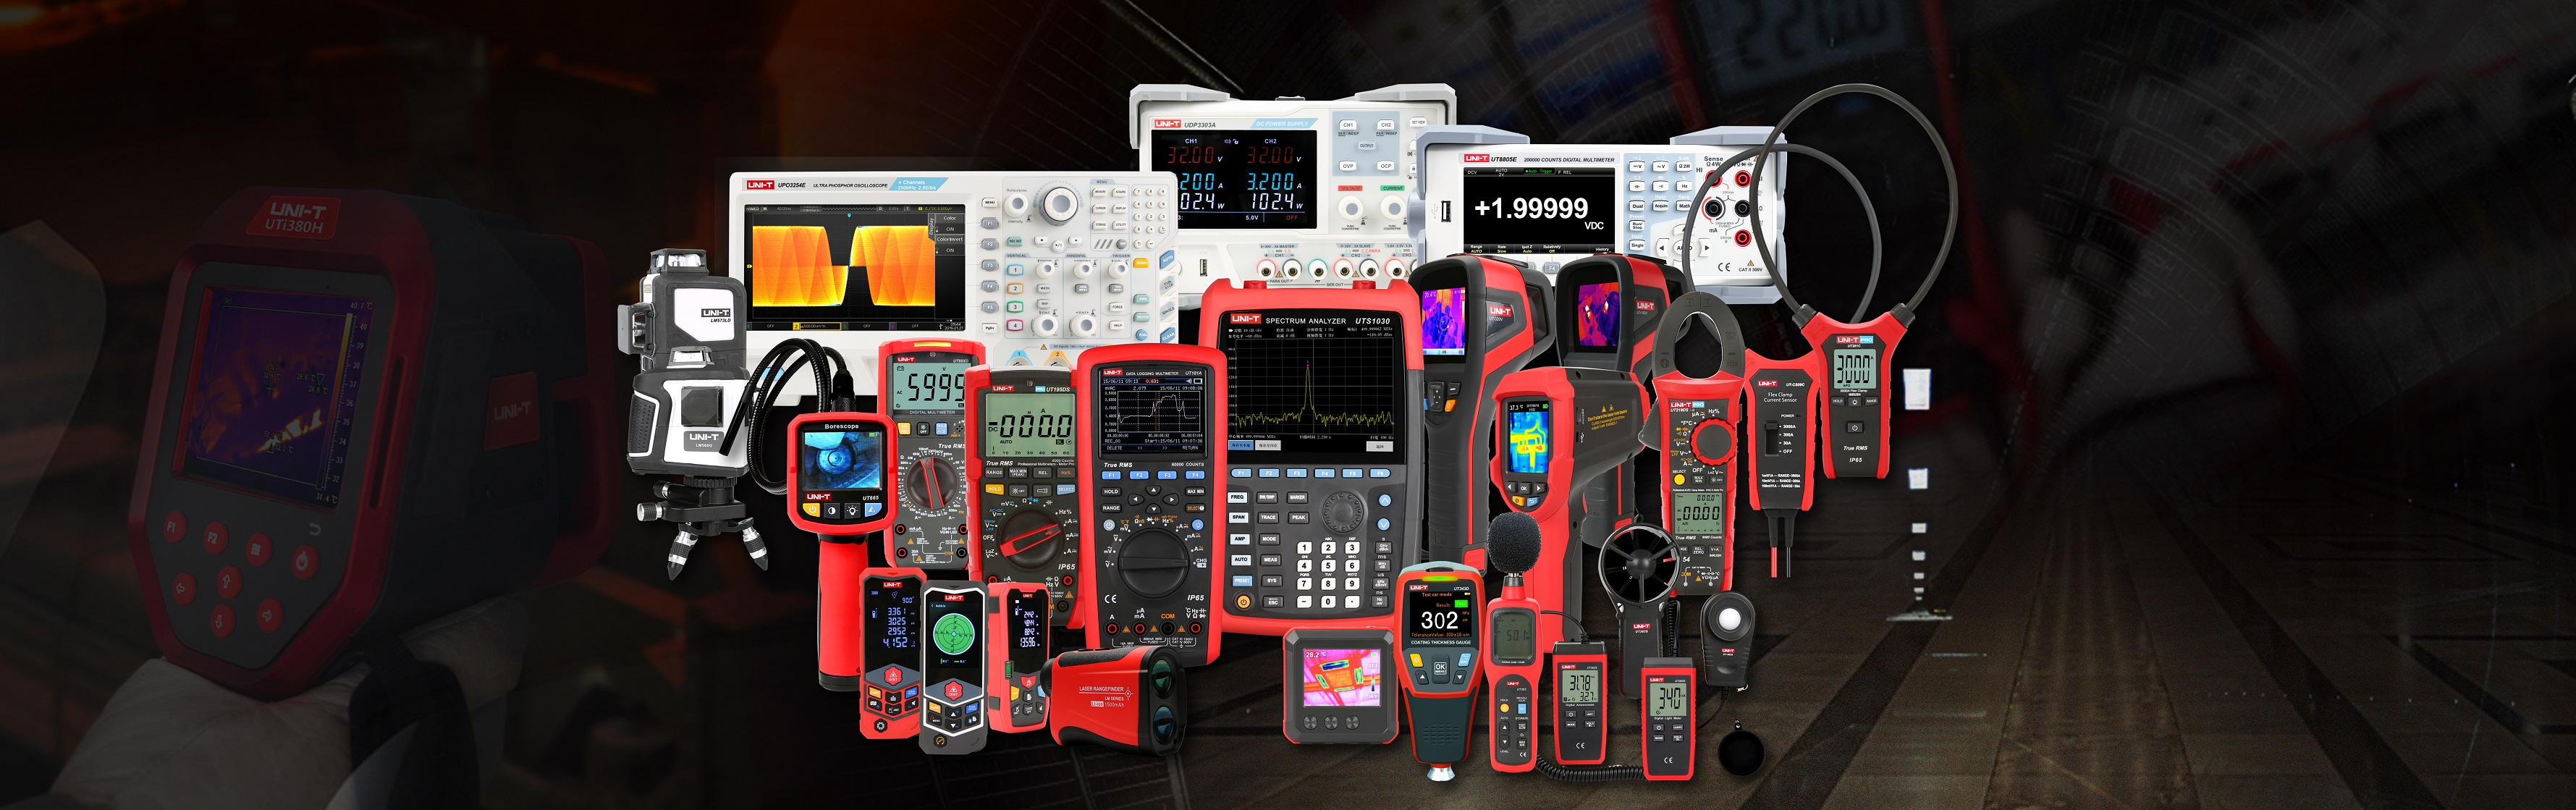 Uni-T Electrical Instruments